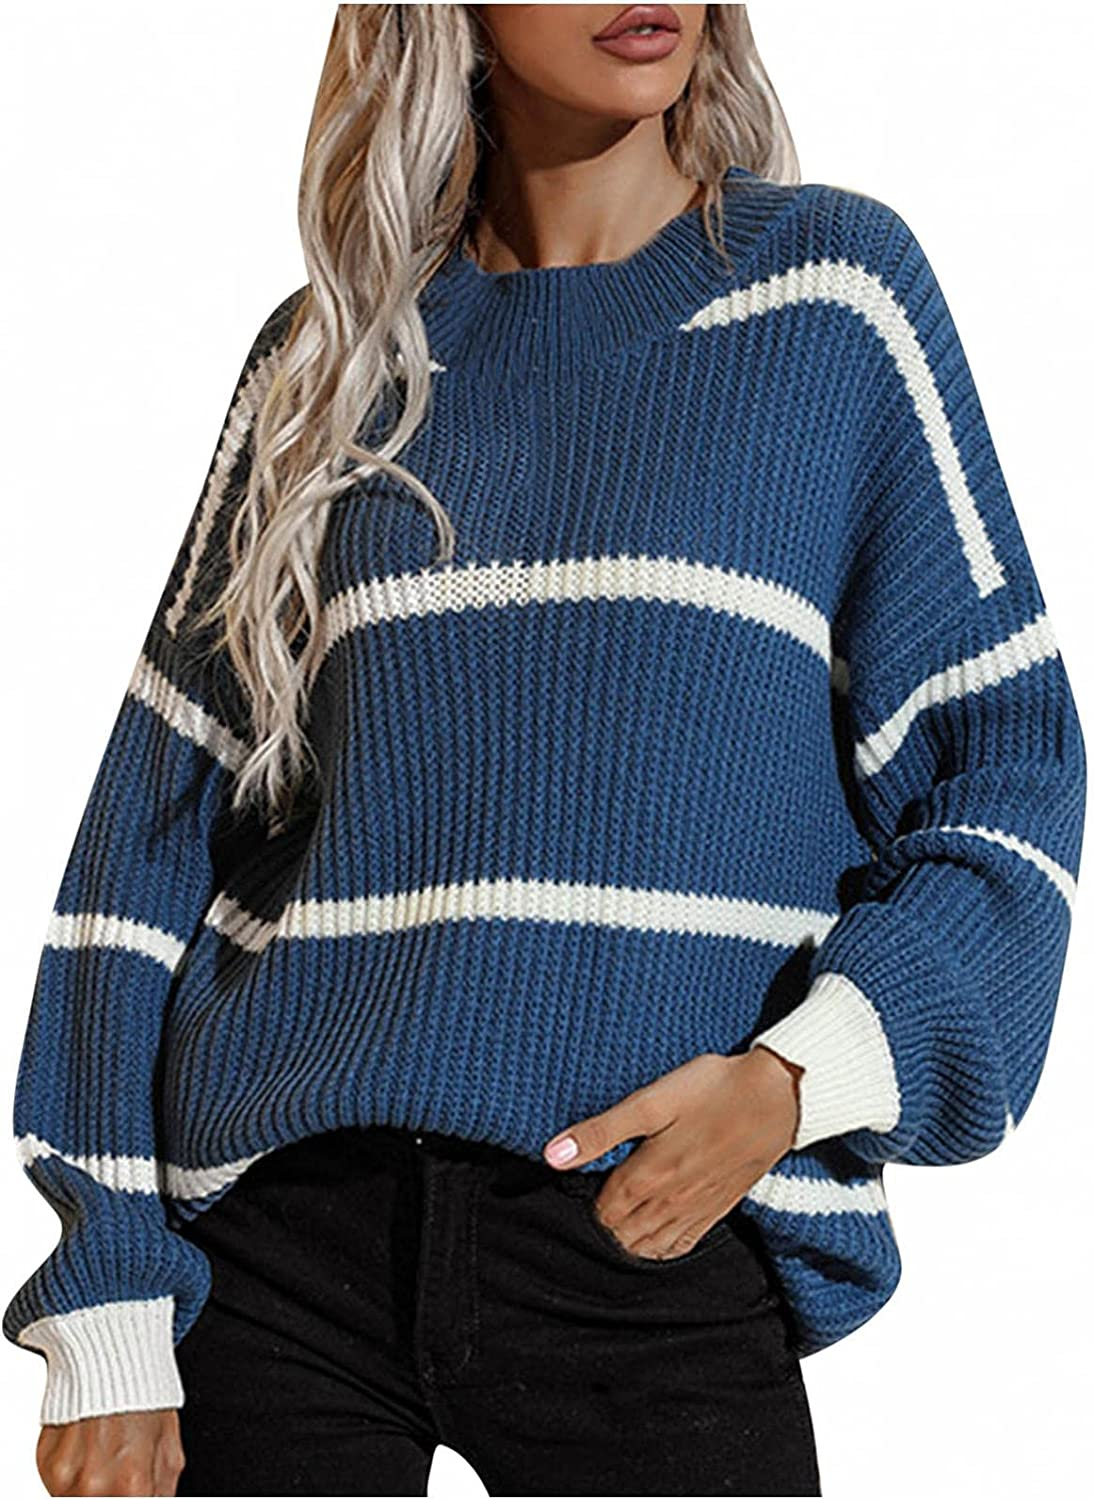 Women Oversized Max 85% OFF Long Sleeve 5 popular Striped Neck Crew Casual Kni Sweater